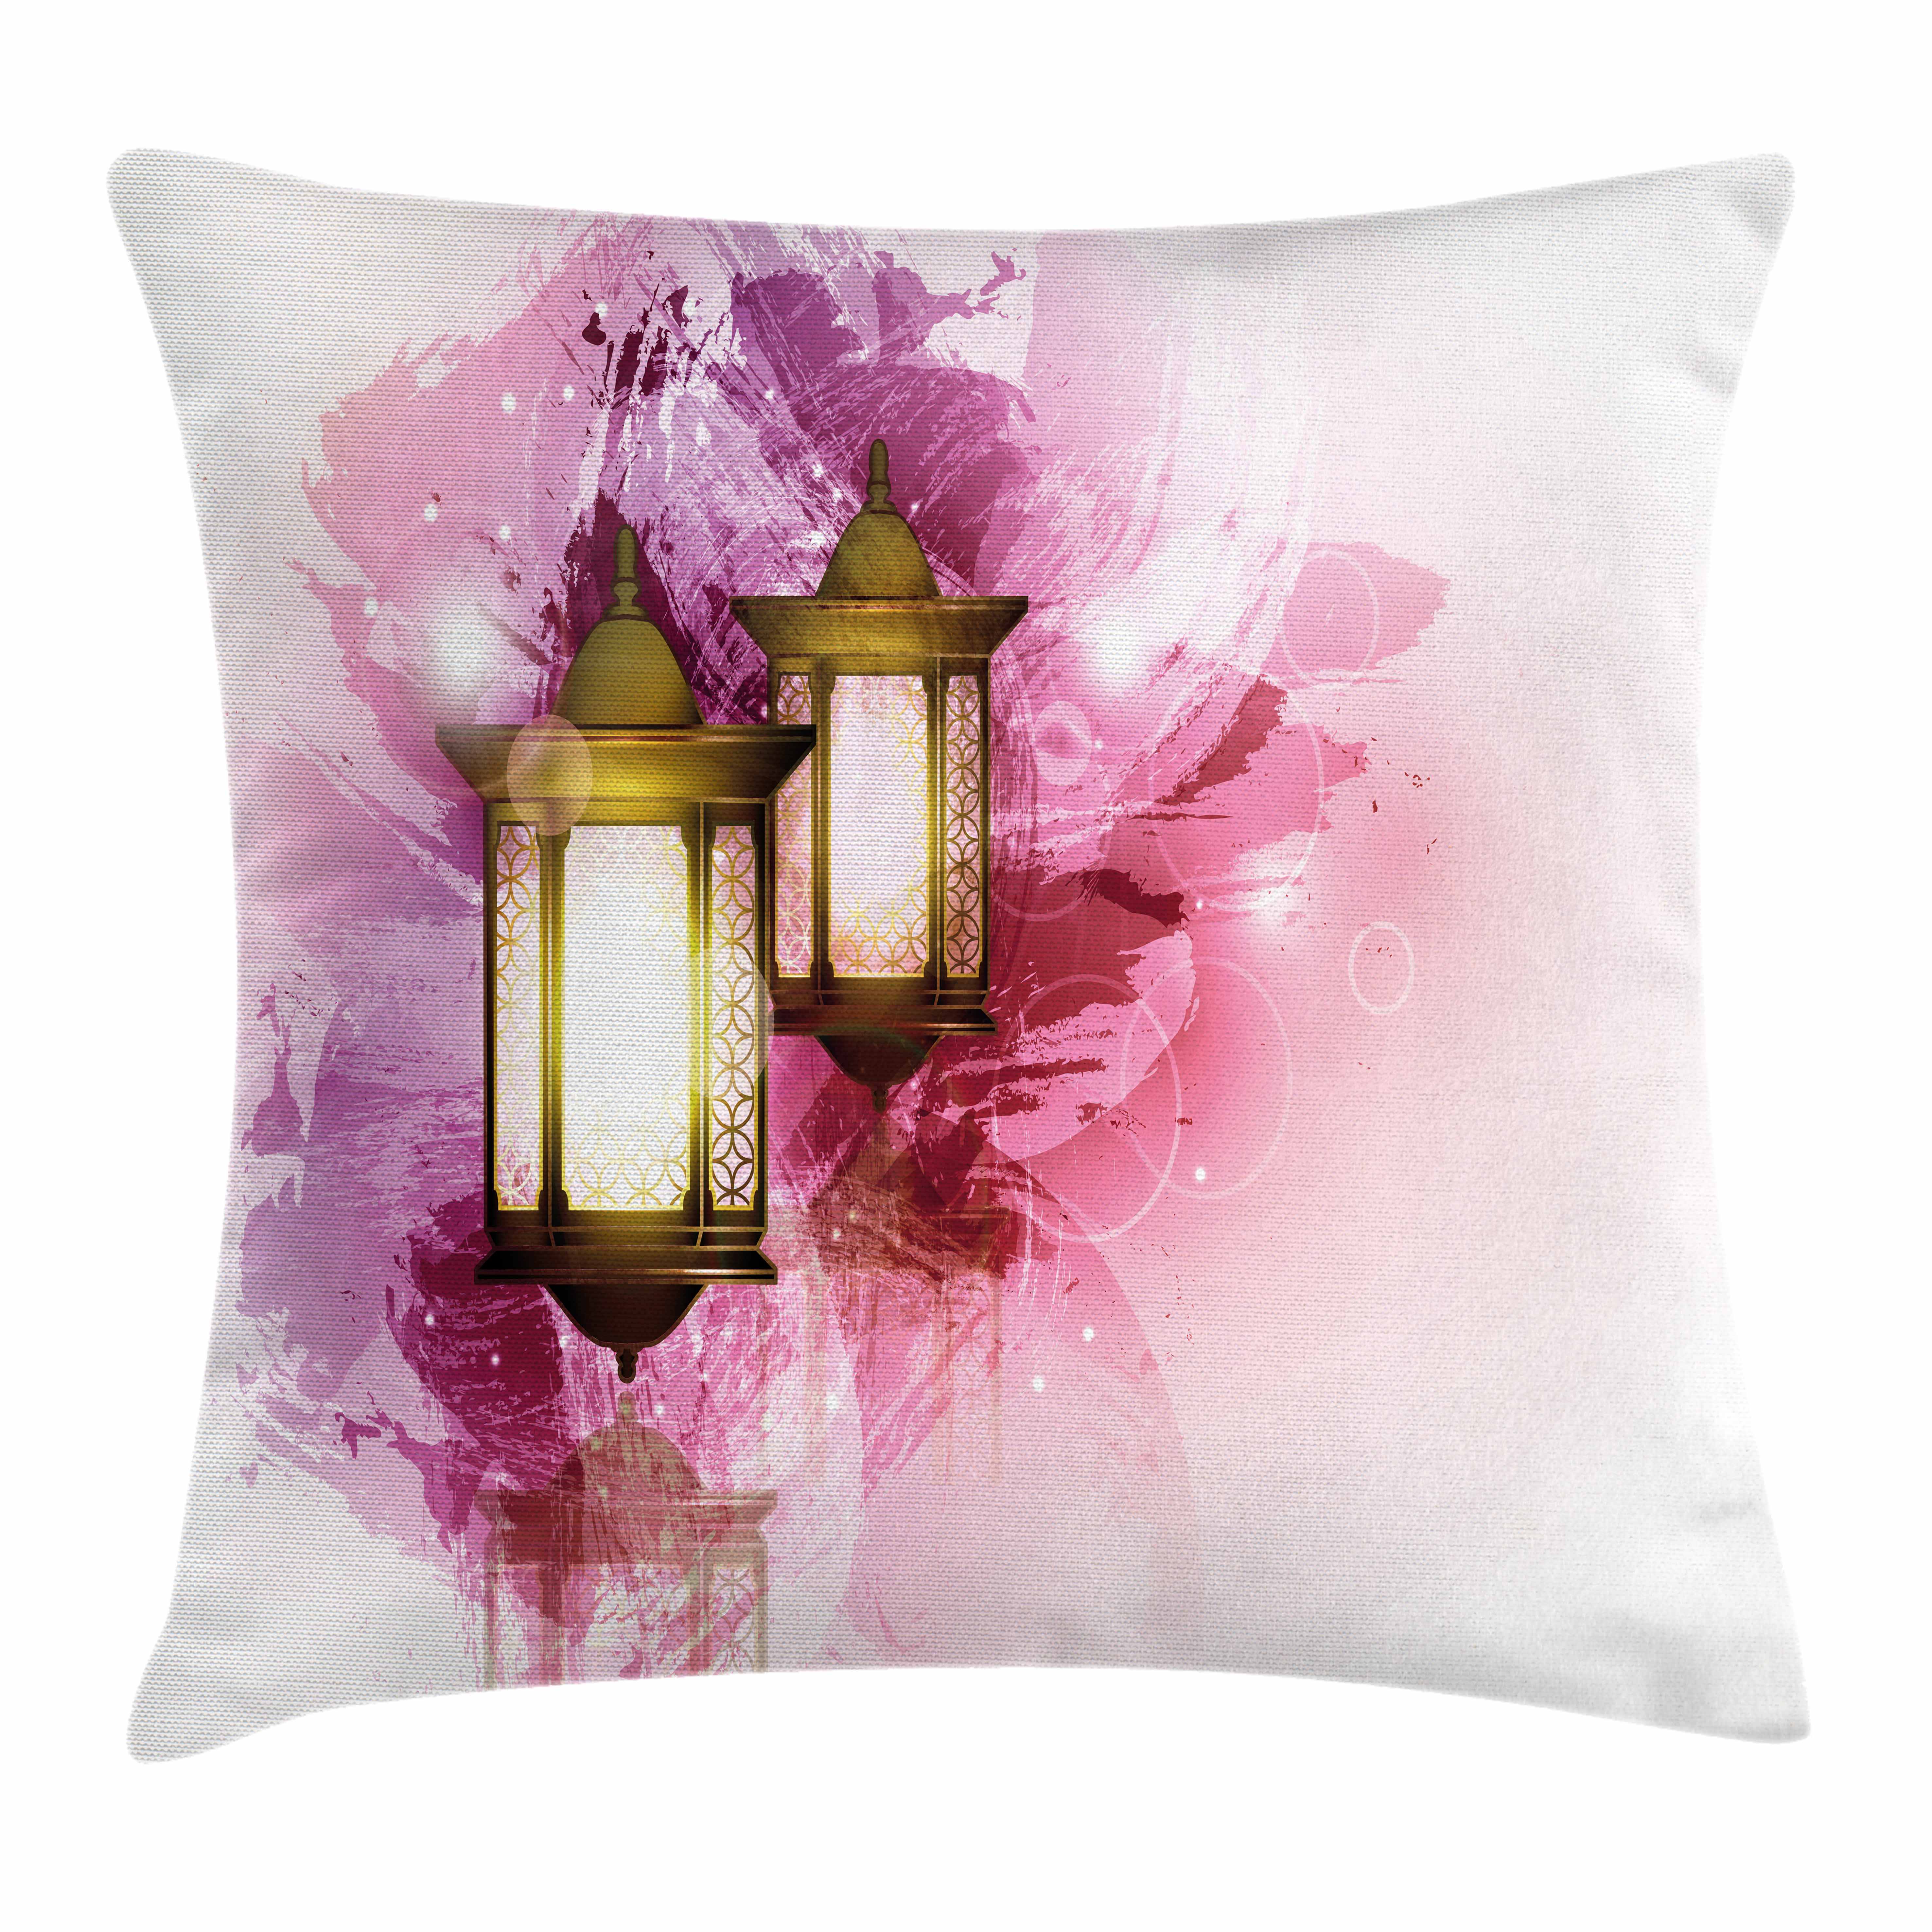 Lantern Throw Pillow Cushion Cover, Ramadan Themed Fanoos Festive Celebration... by Kozmos